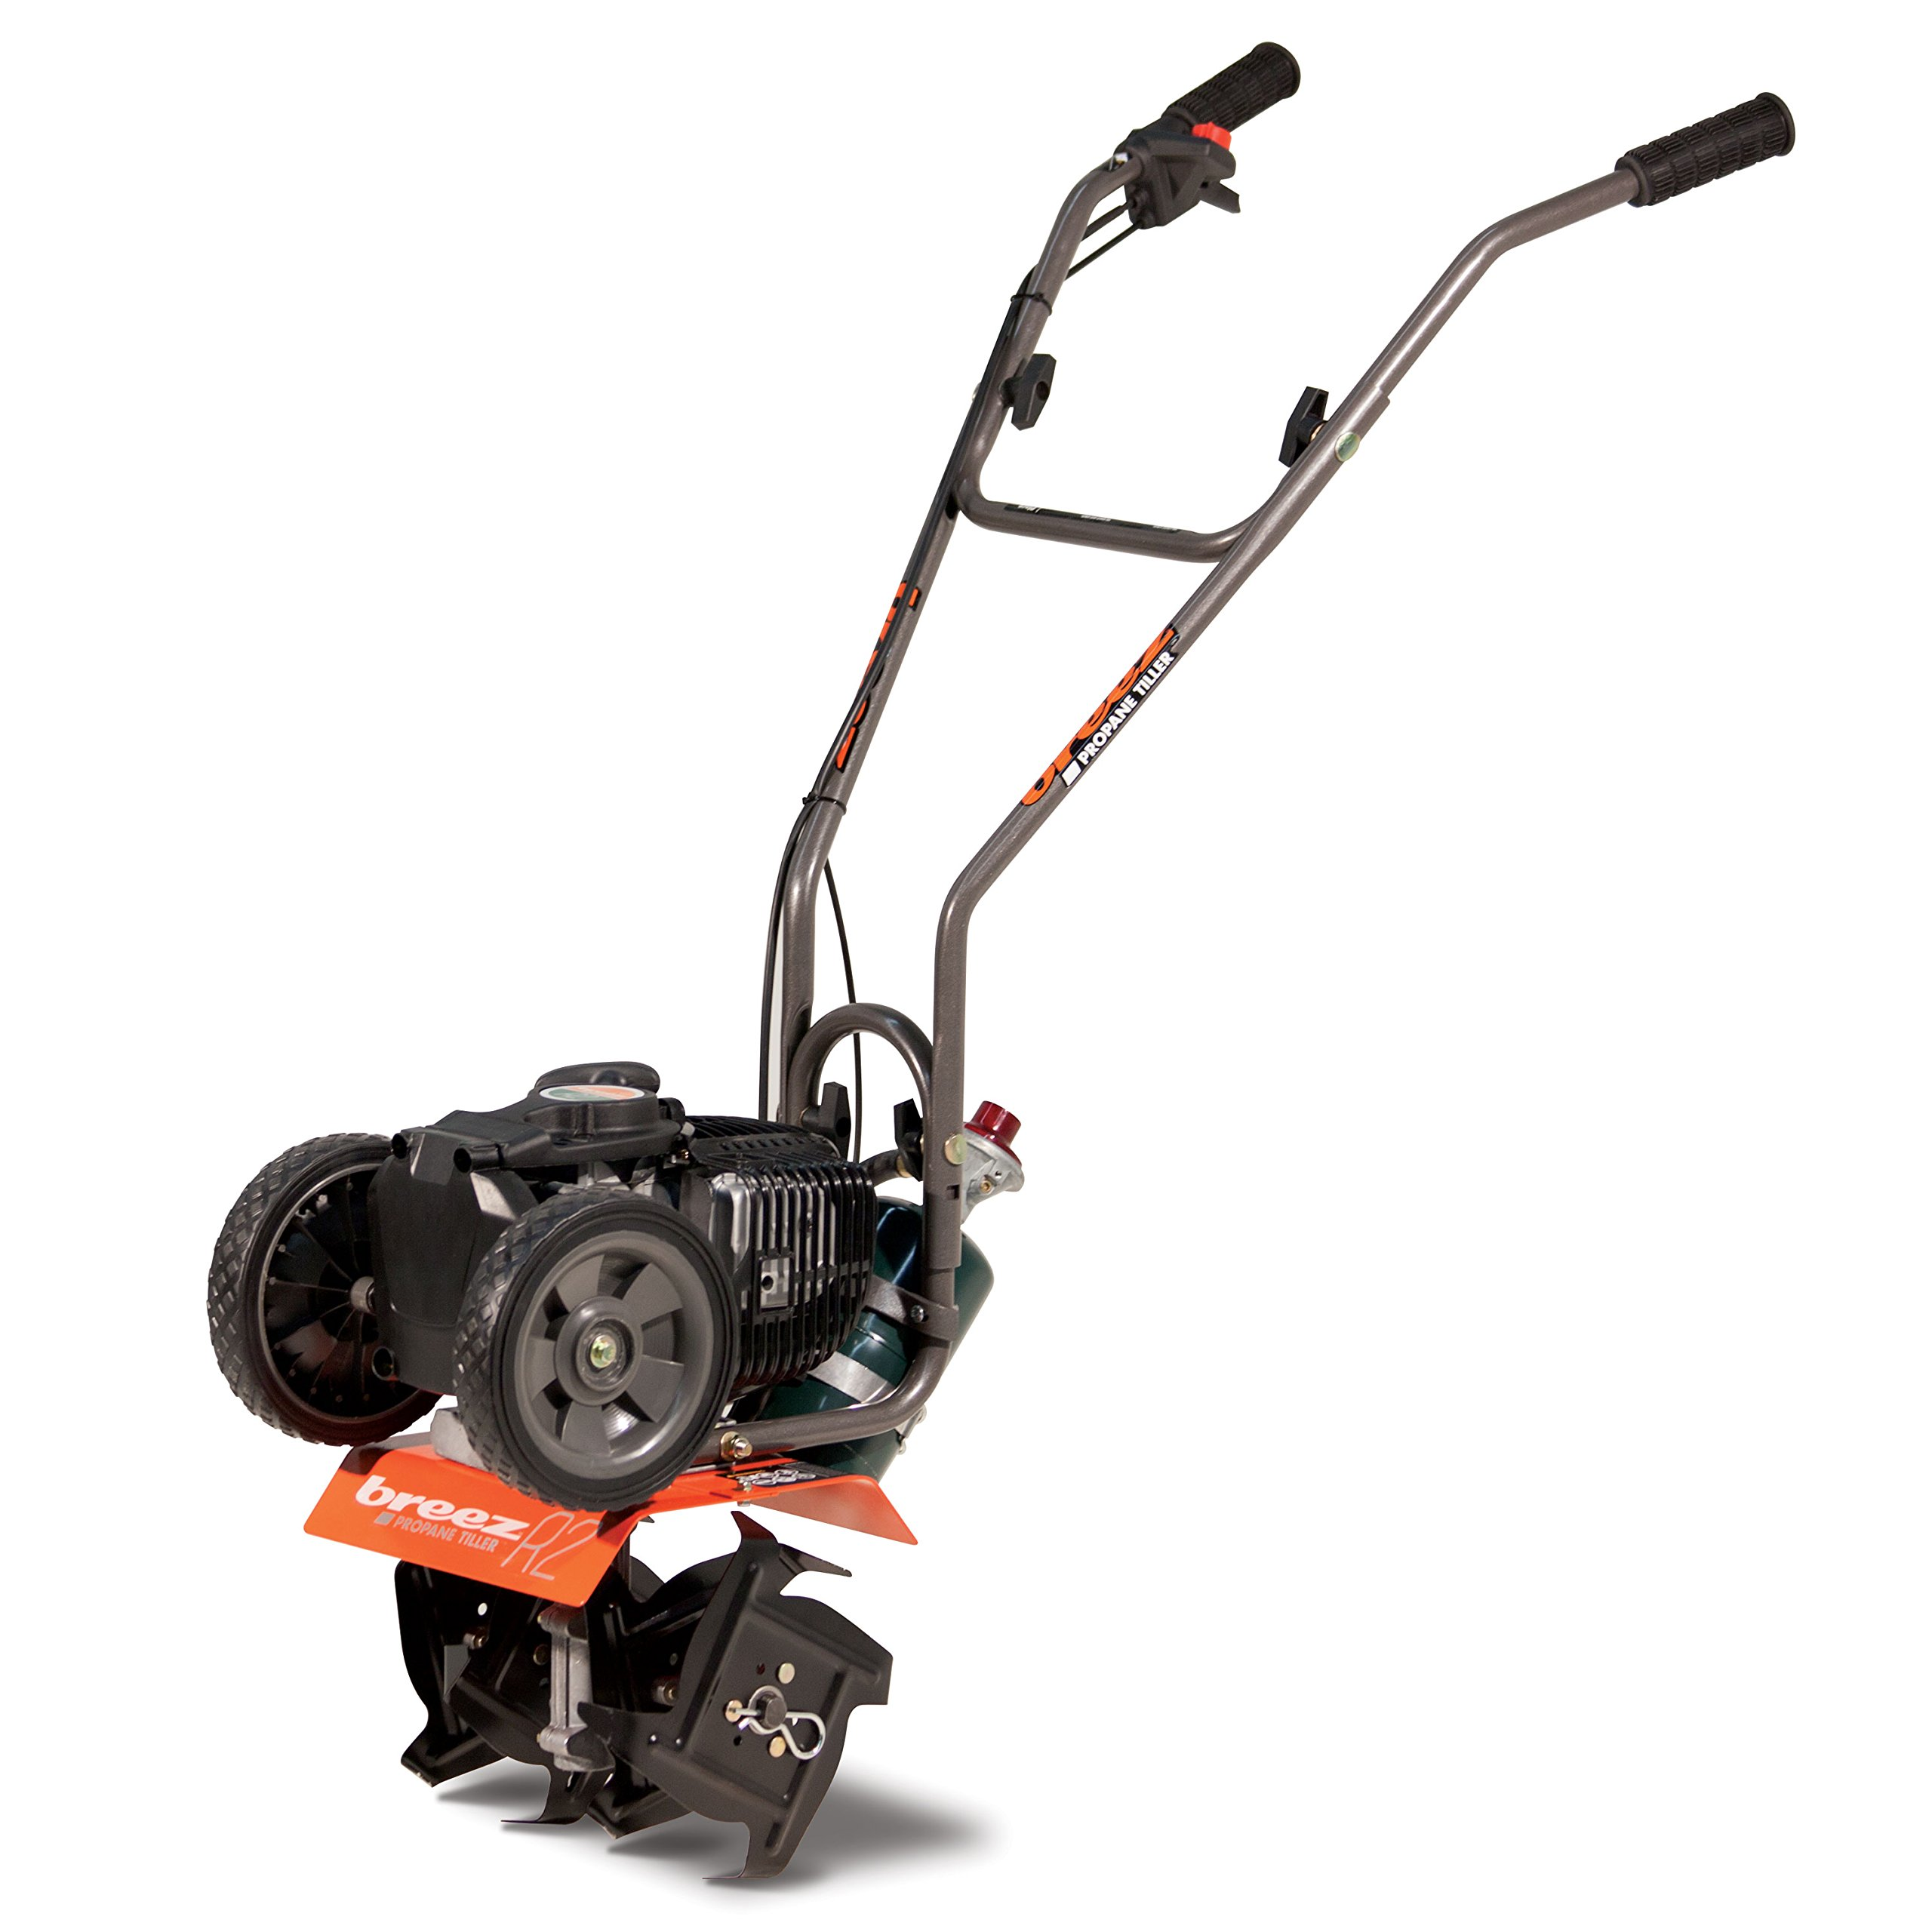 Breez 21046 R2 Propane Tiller Cultivator - 40cc 4-Cycle Engine, (CARB Compliant) by Breez